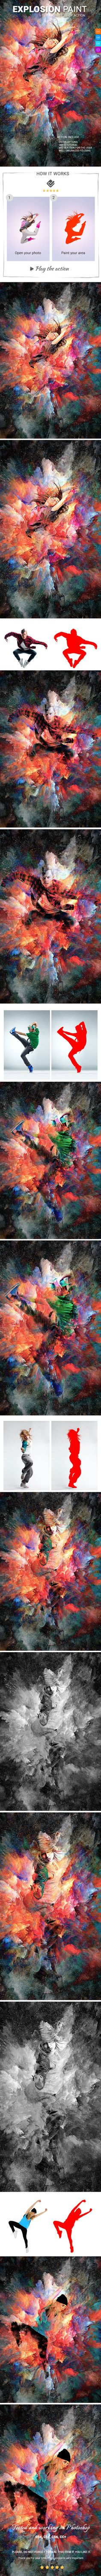 #Explosion Paint Photoshop Action - #Photo #Effects #Actions